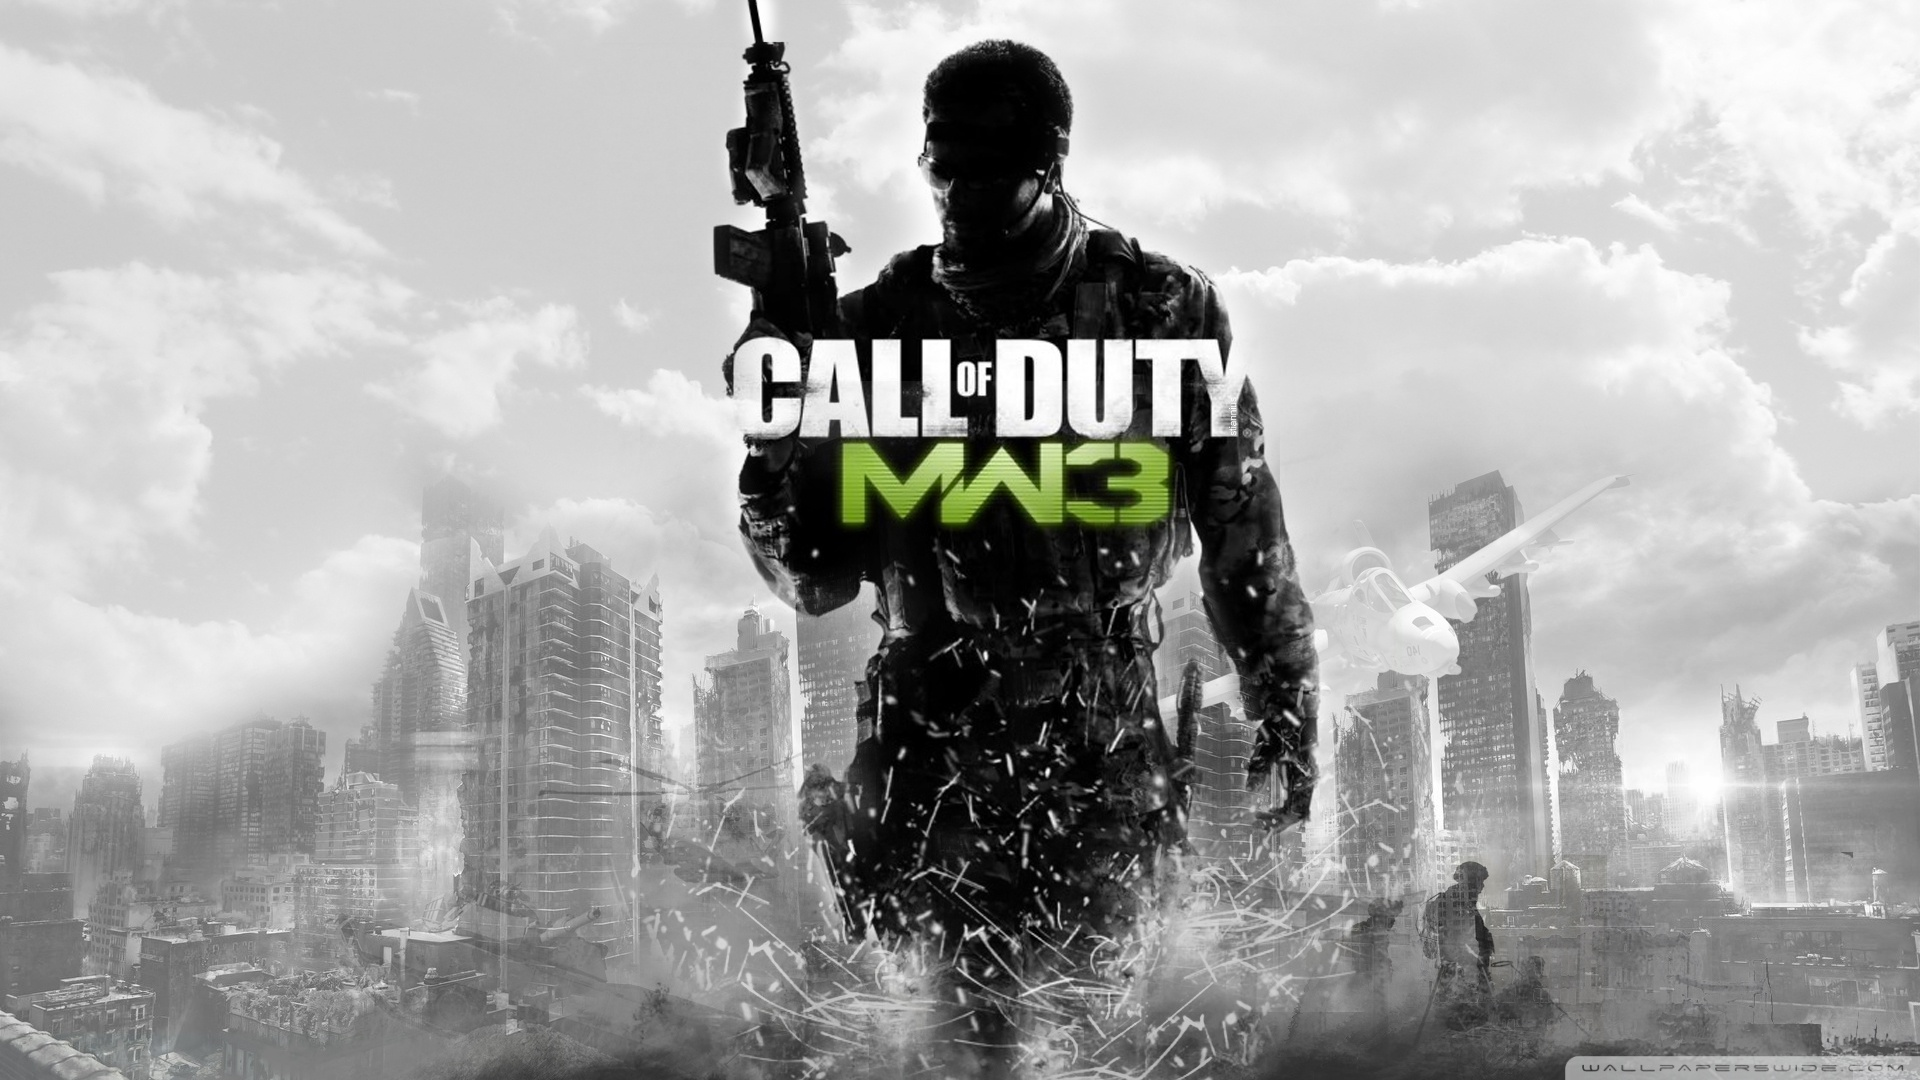 Free Download Wallpaperswidecom Call Of Duty Hd Desktop Wallpapers